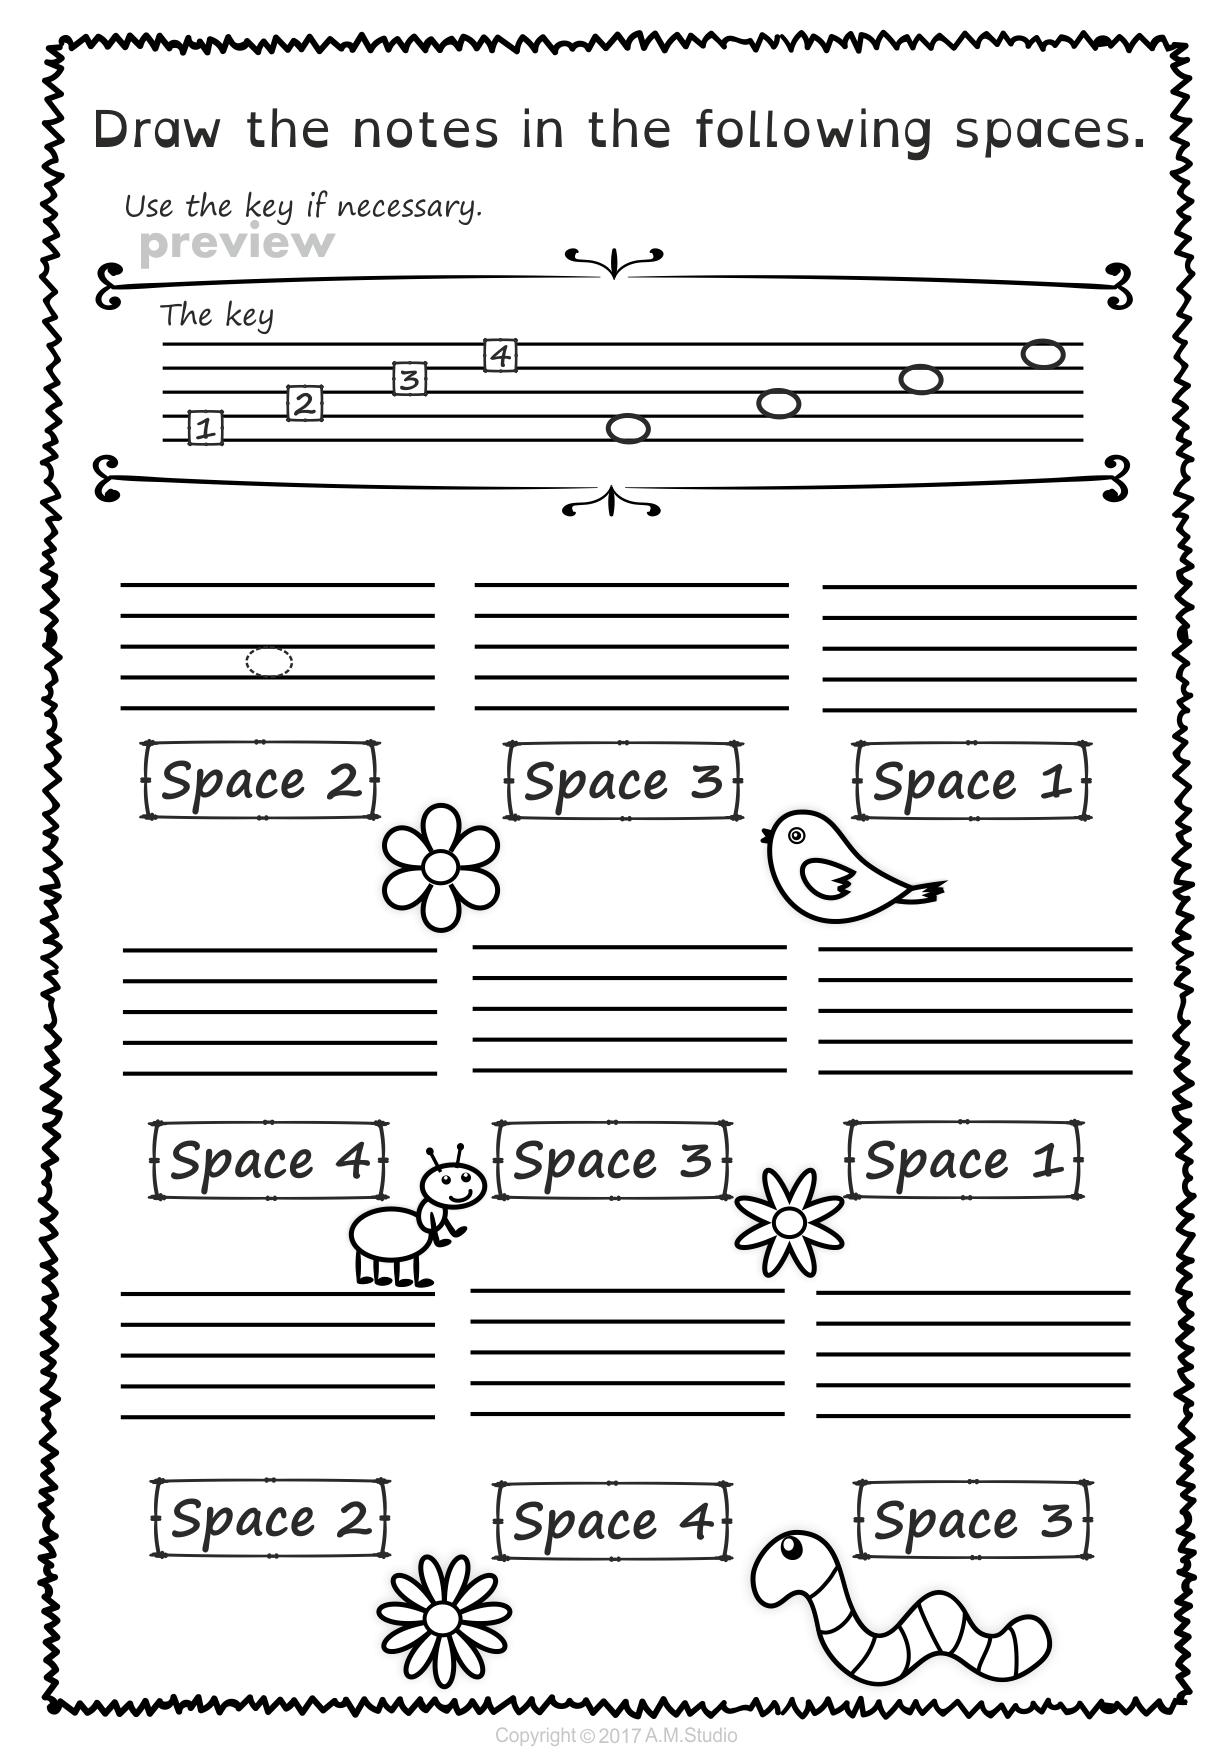 This Set Of 20 Spring Themed Worksheets Is Designed To Help Your Students Practice Identifying